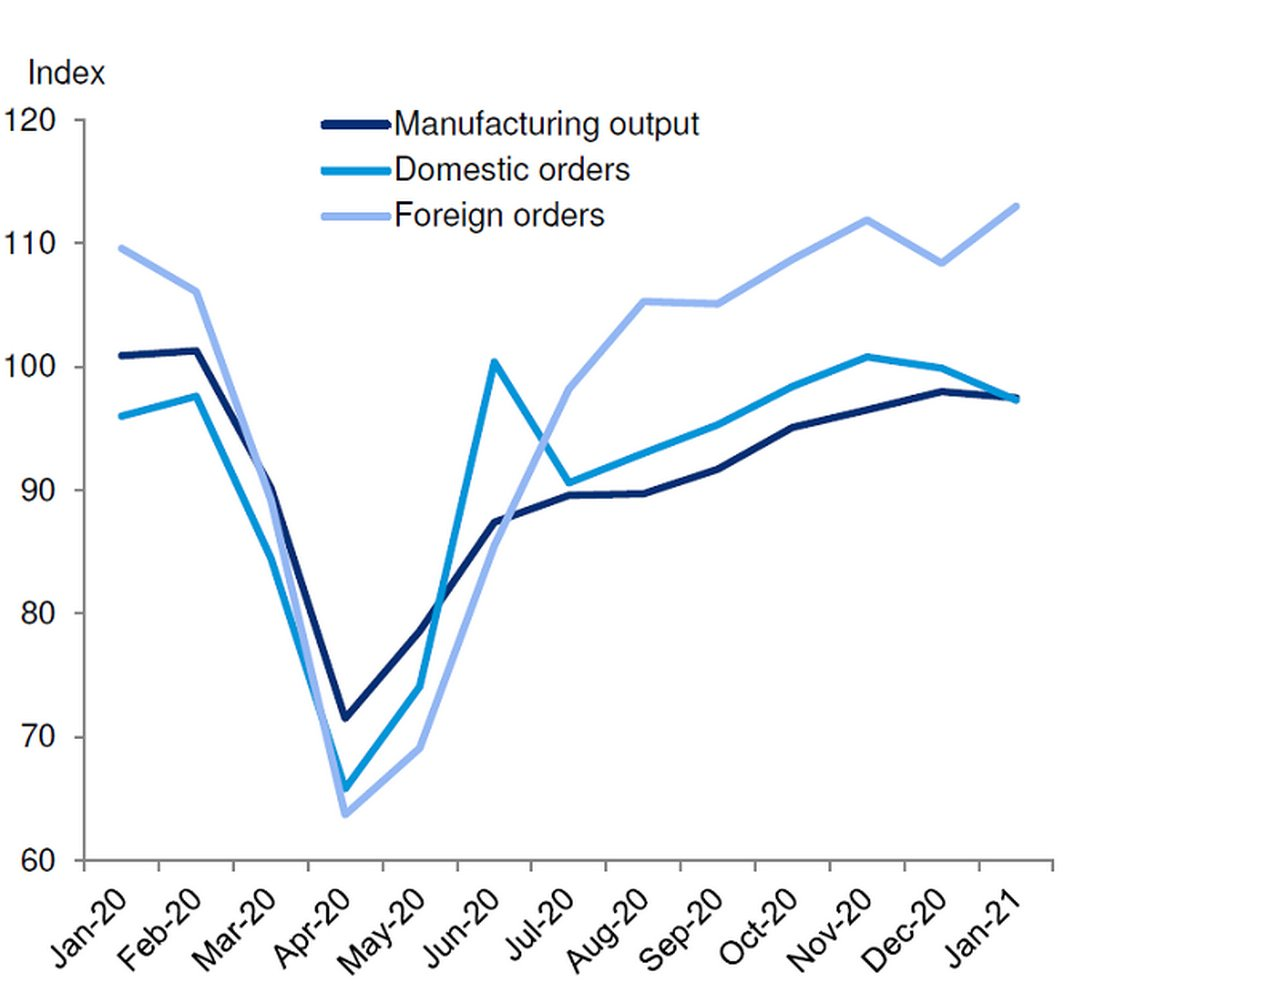 Figure_1_German_industry_boosted_by_foreign_demand-800x627.png